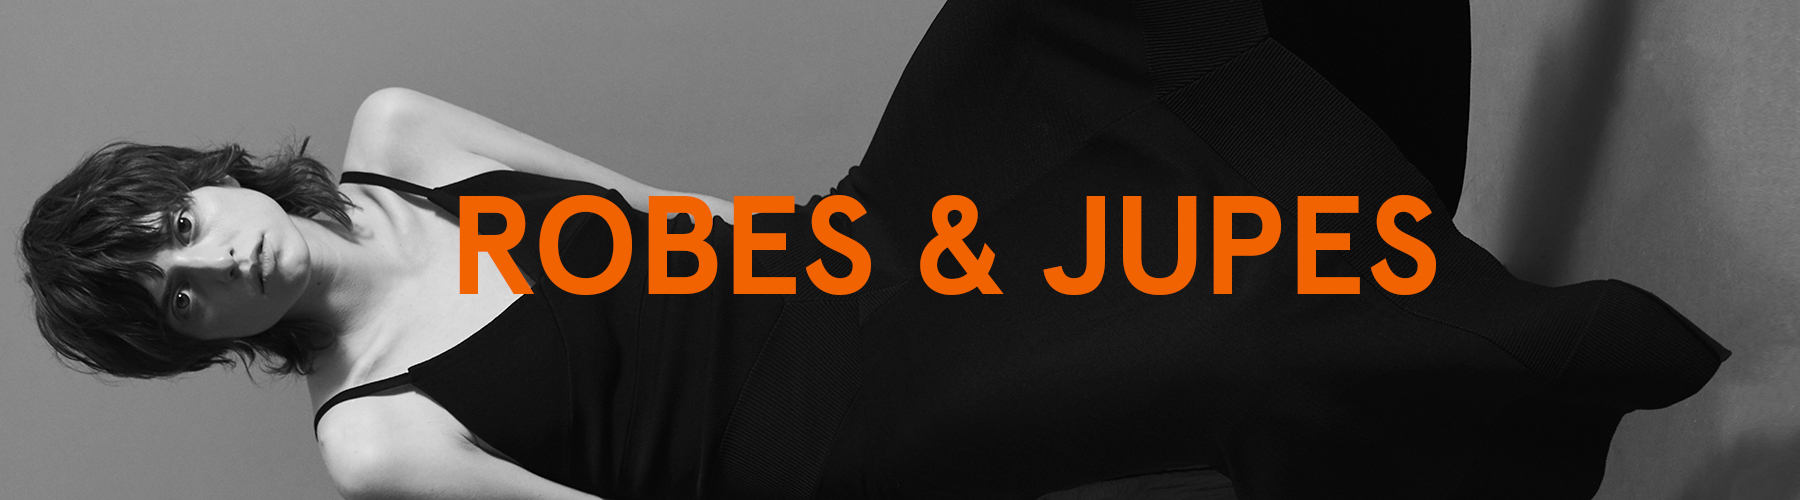 Robes & Jupes